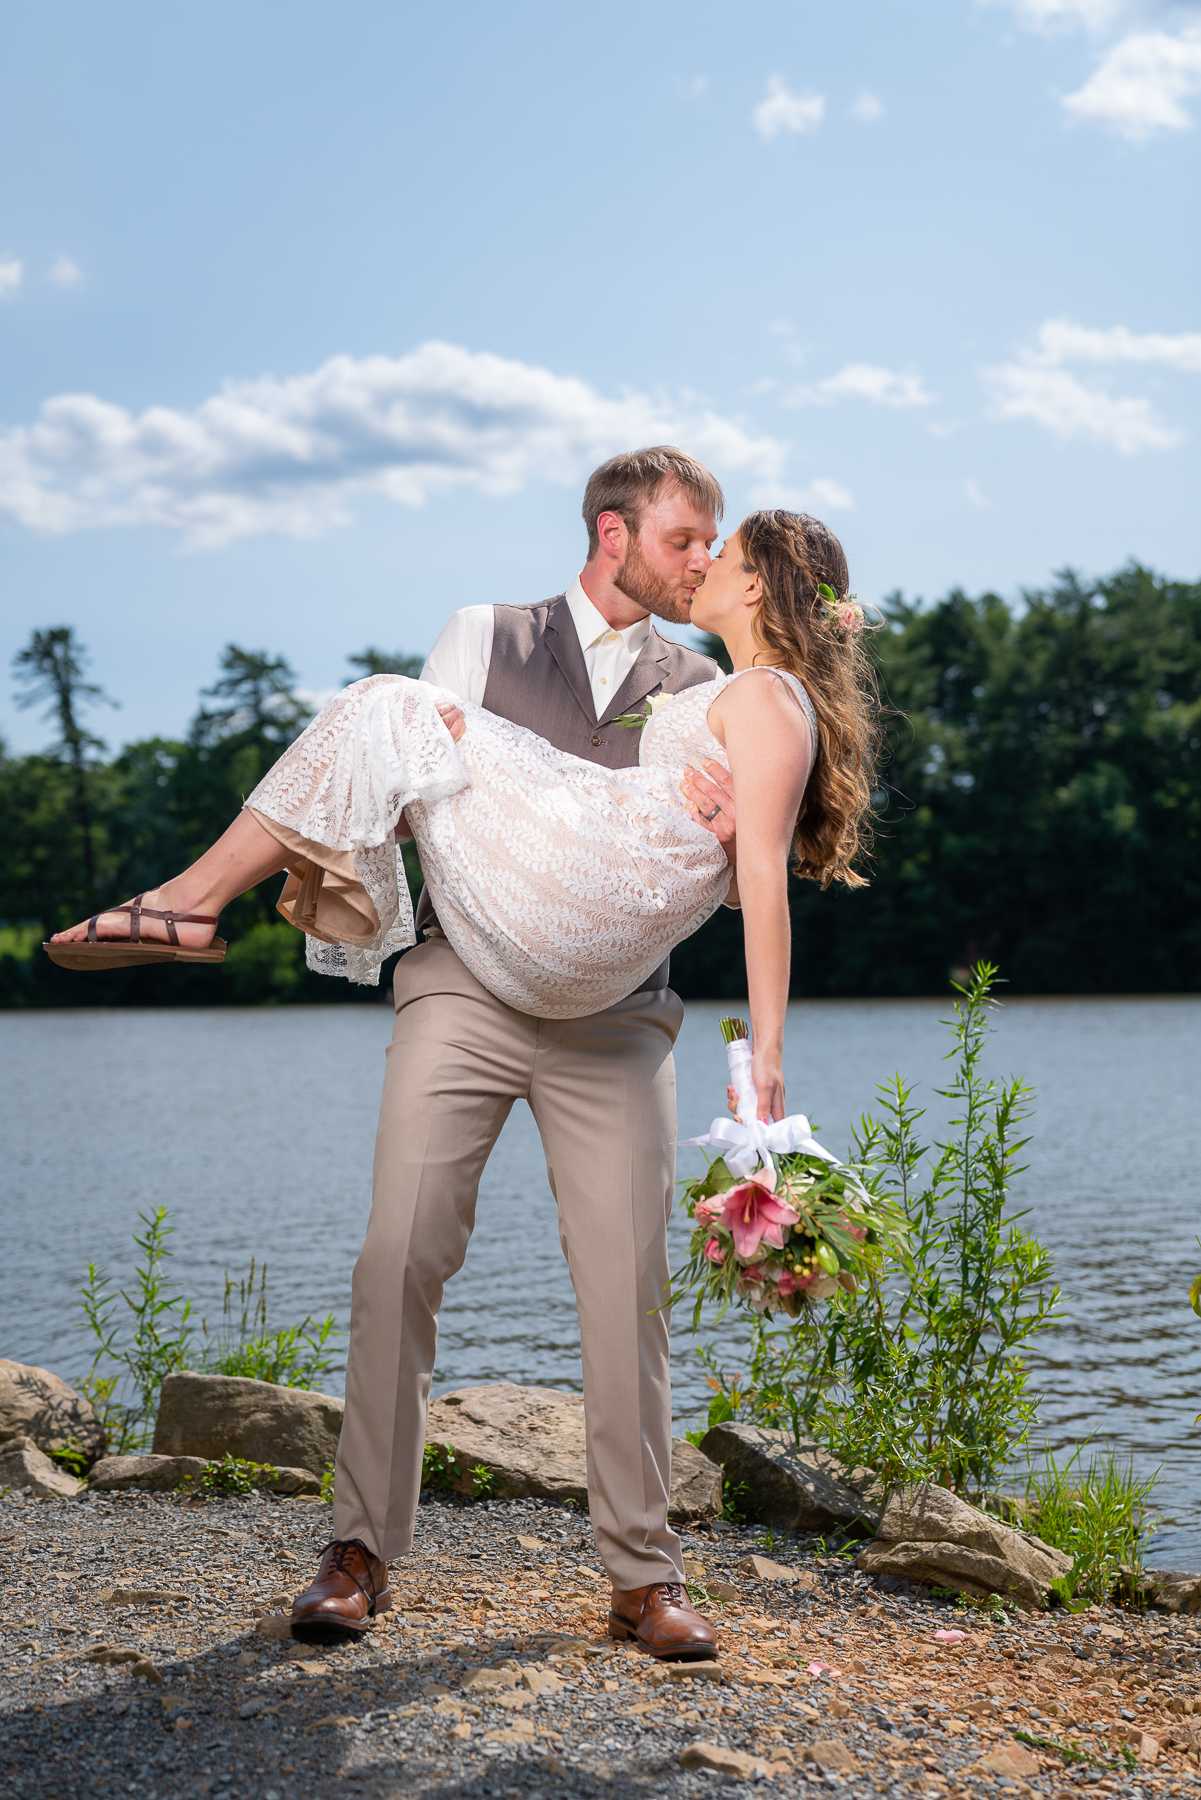 The Lake made for a lovely backdrop for their photos!